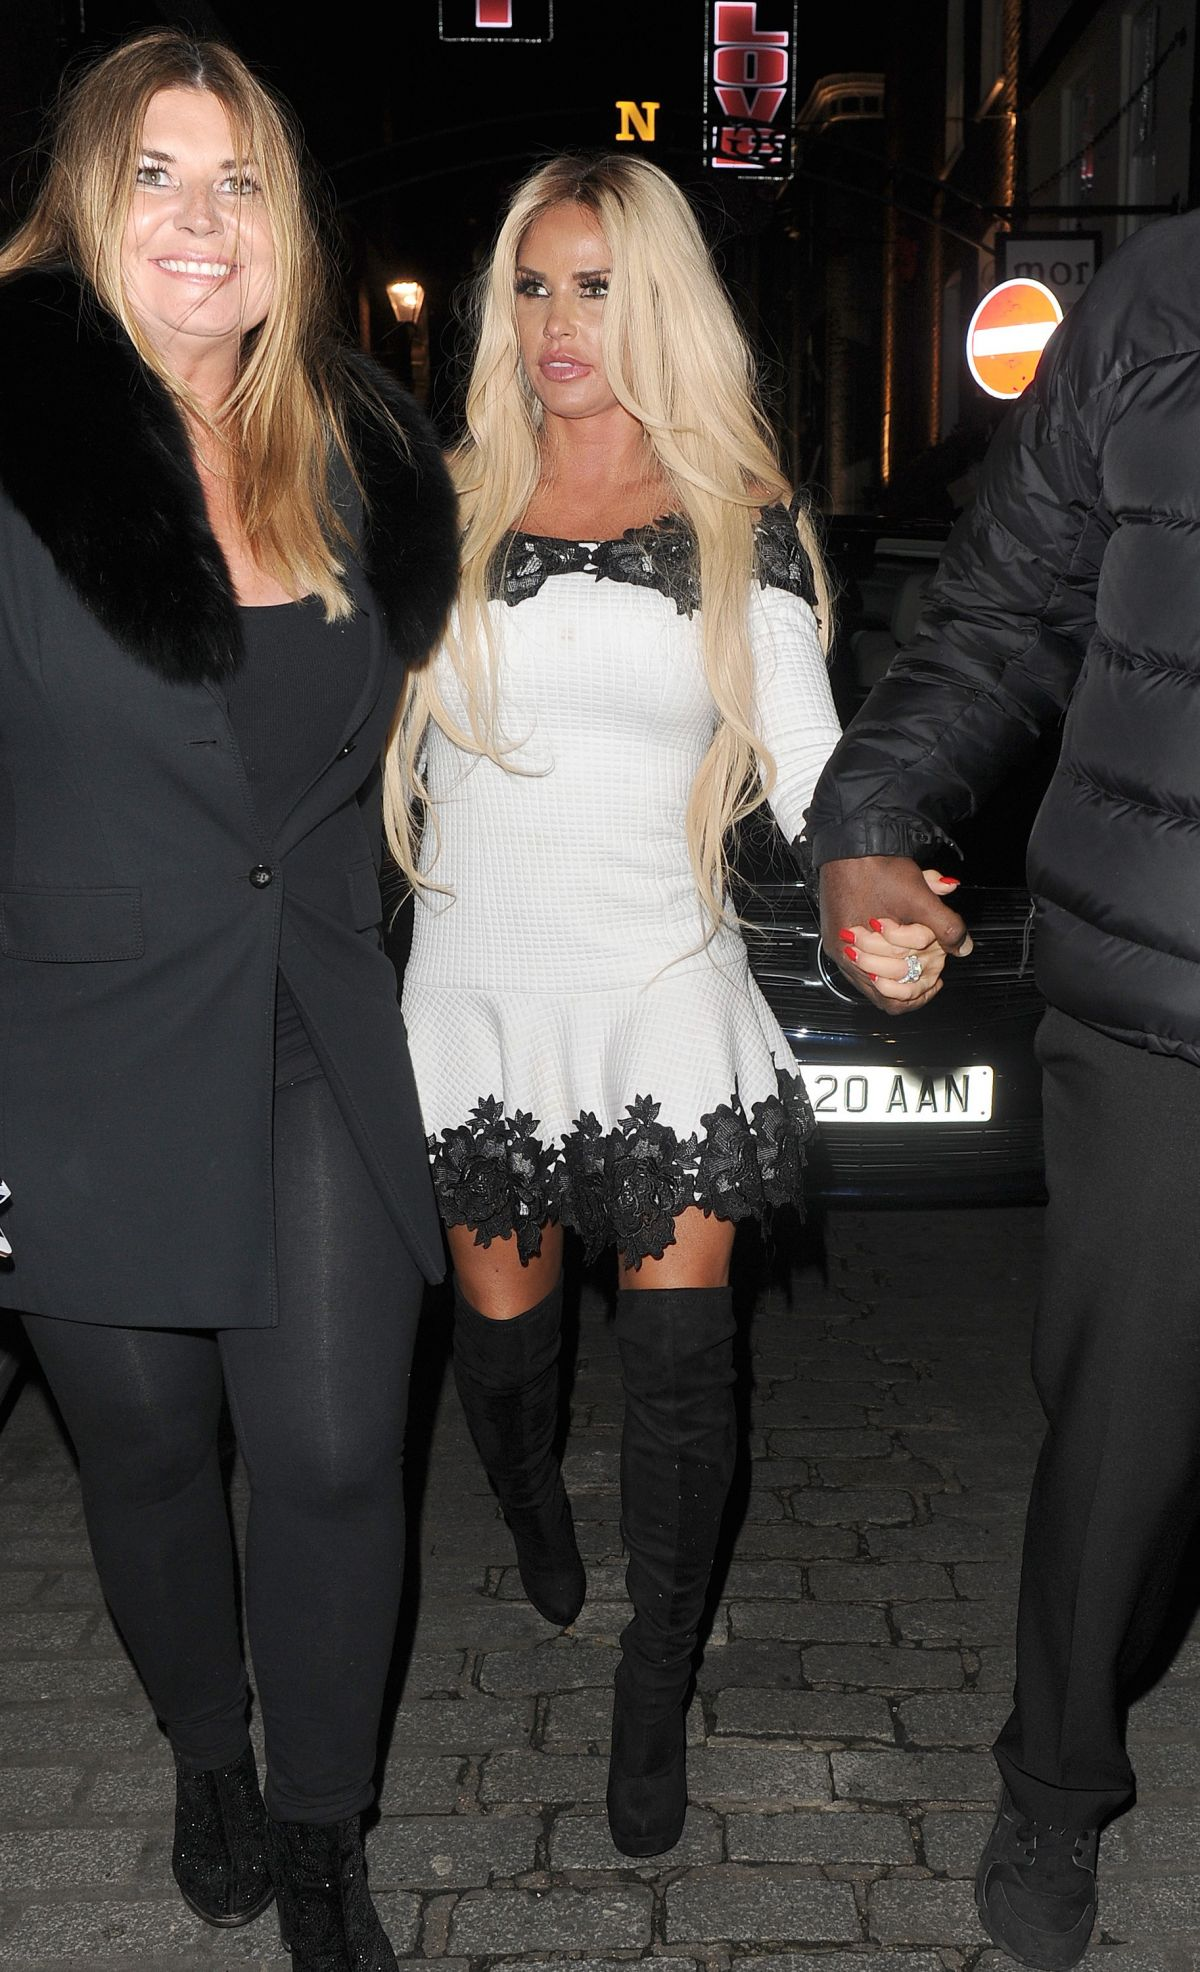 Katie Price Out for the evening in London   katie-price-out-for-the-evening-in-london_9